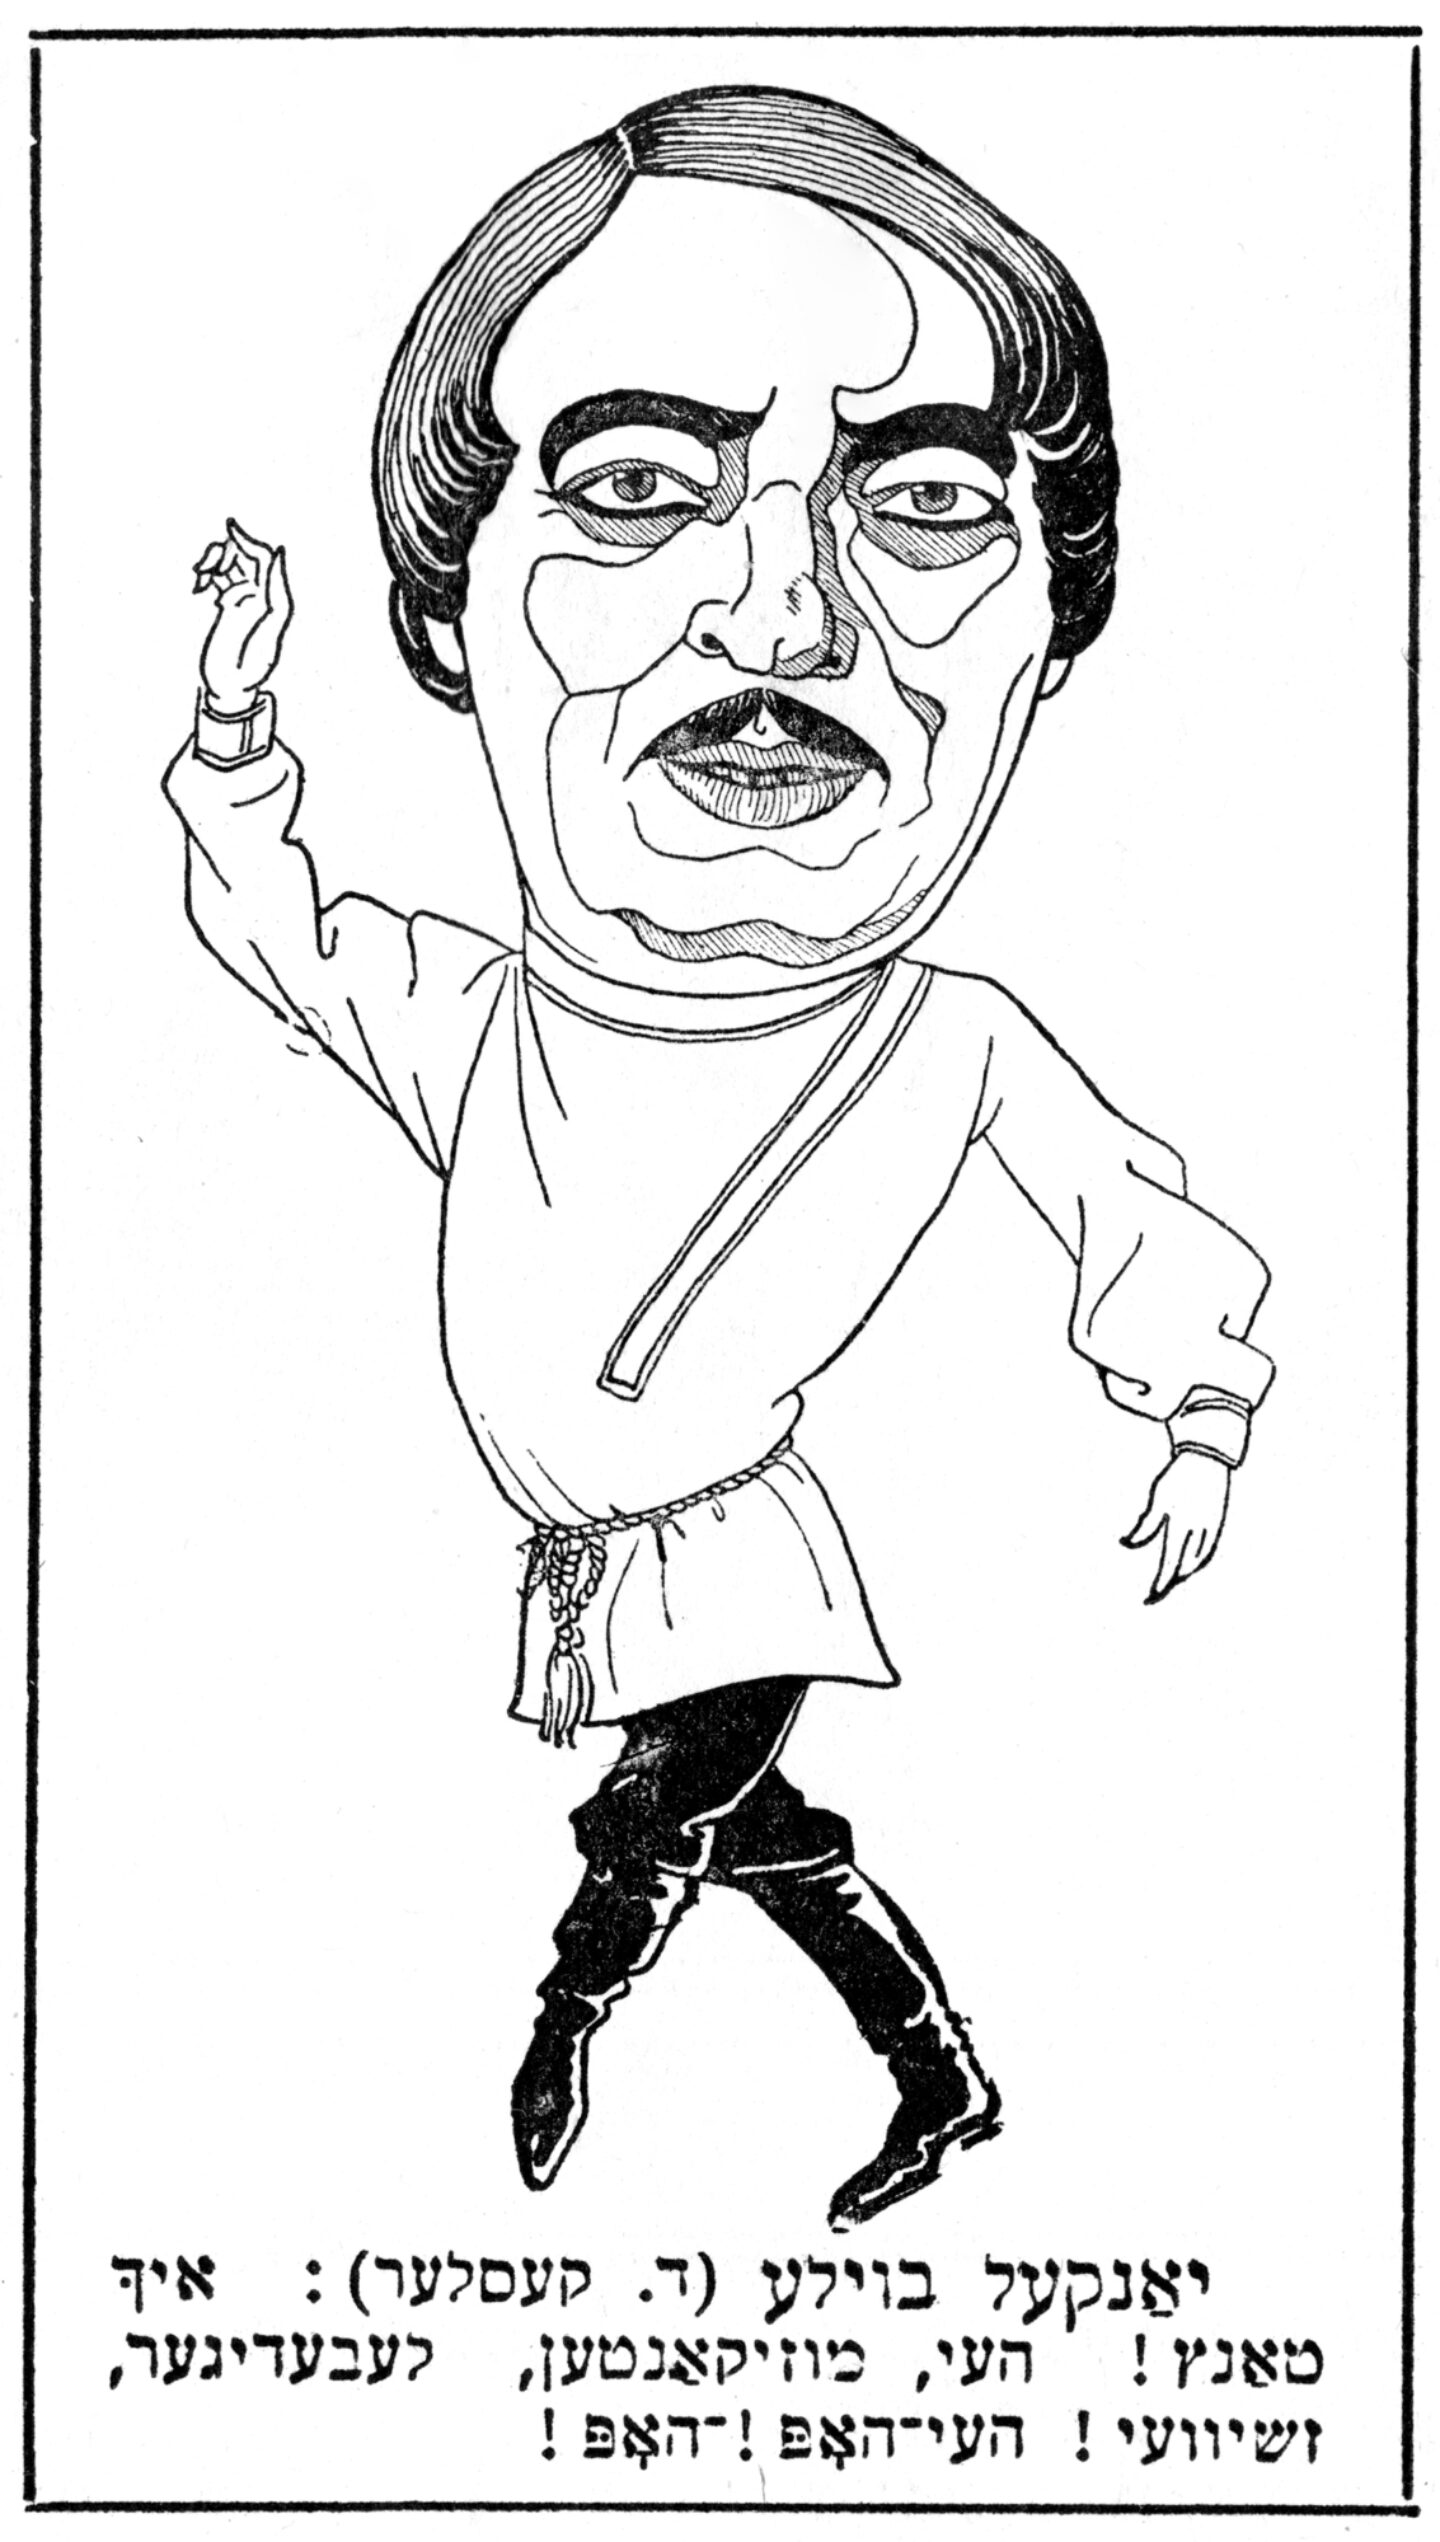 """<p>Caricature of actor David Kessler dancing as the title character in the stage adaptation of Leon Kobrin's <span class=""""numbers"""">1899</span> novella <em>Yankl Boyle</em>. From satirical journal <em>Der groyser kundes</em>, December <span class=""""numbers"""">8</span>, <span class=""""numbers"""">1916</span>, courtesy of the Yiddish Book&nbsp;Center.</p>"""